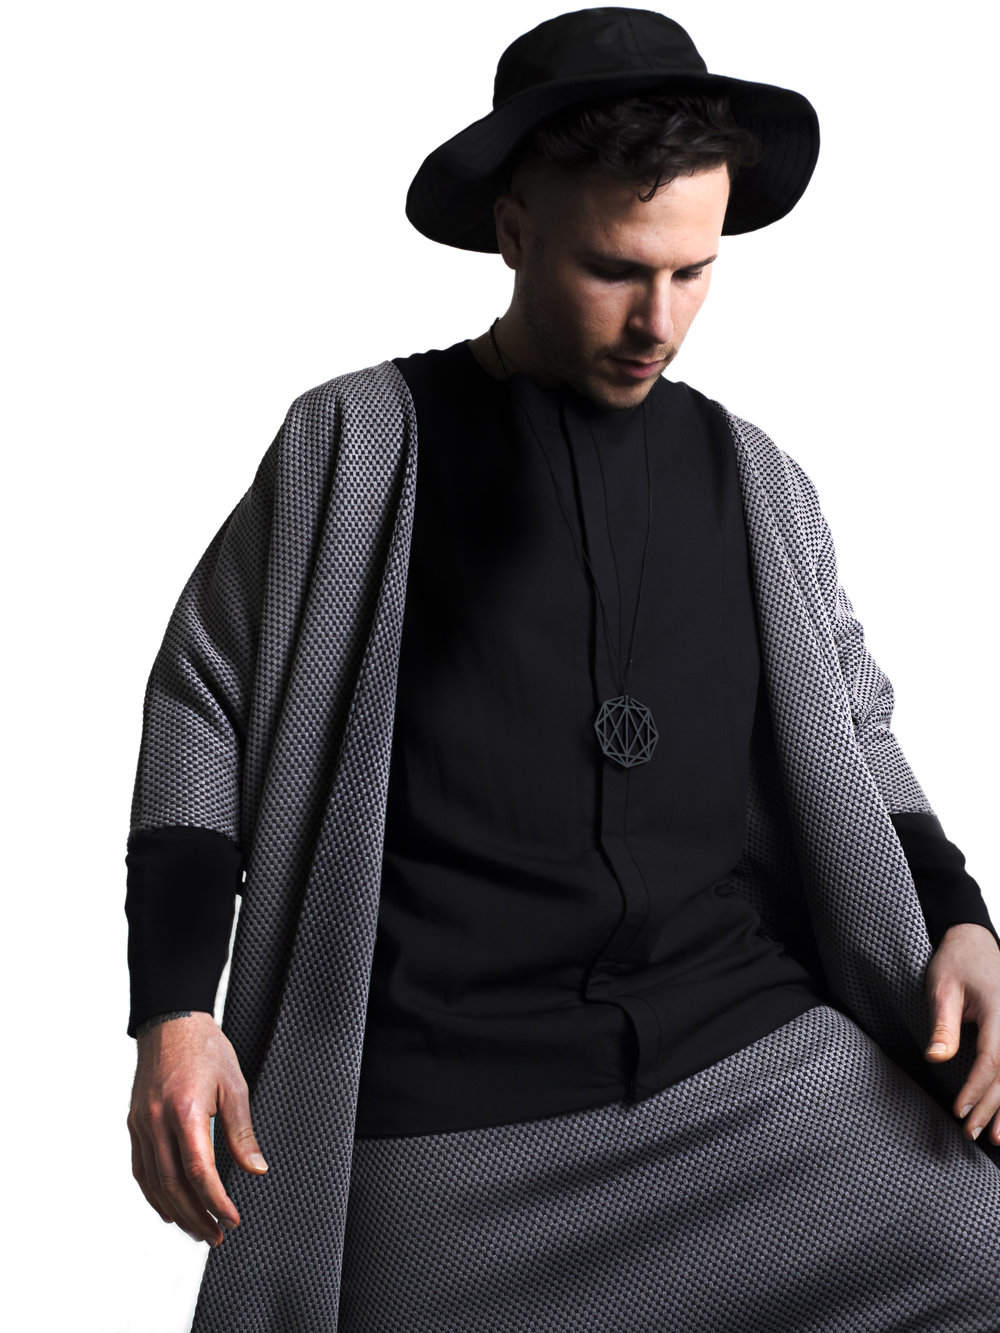 zaramia-ava-zaramiaava-leeds-fashion-designer-ethical-sustainable-tailored-minimalist-editorial-print-black-hareem-tshirt-versatile-drape-cowl-styling-studio-menswear-models-photoshoot-black-white-trousers-hat-monochrome-9.jpg